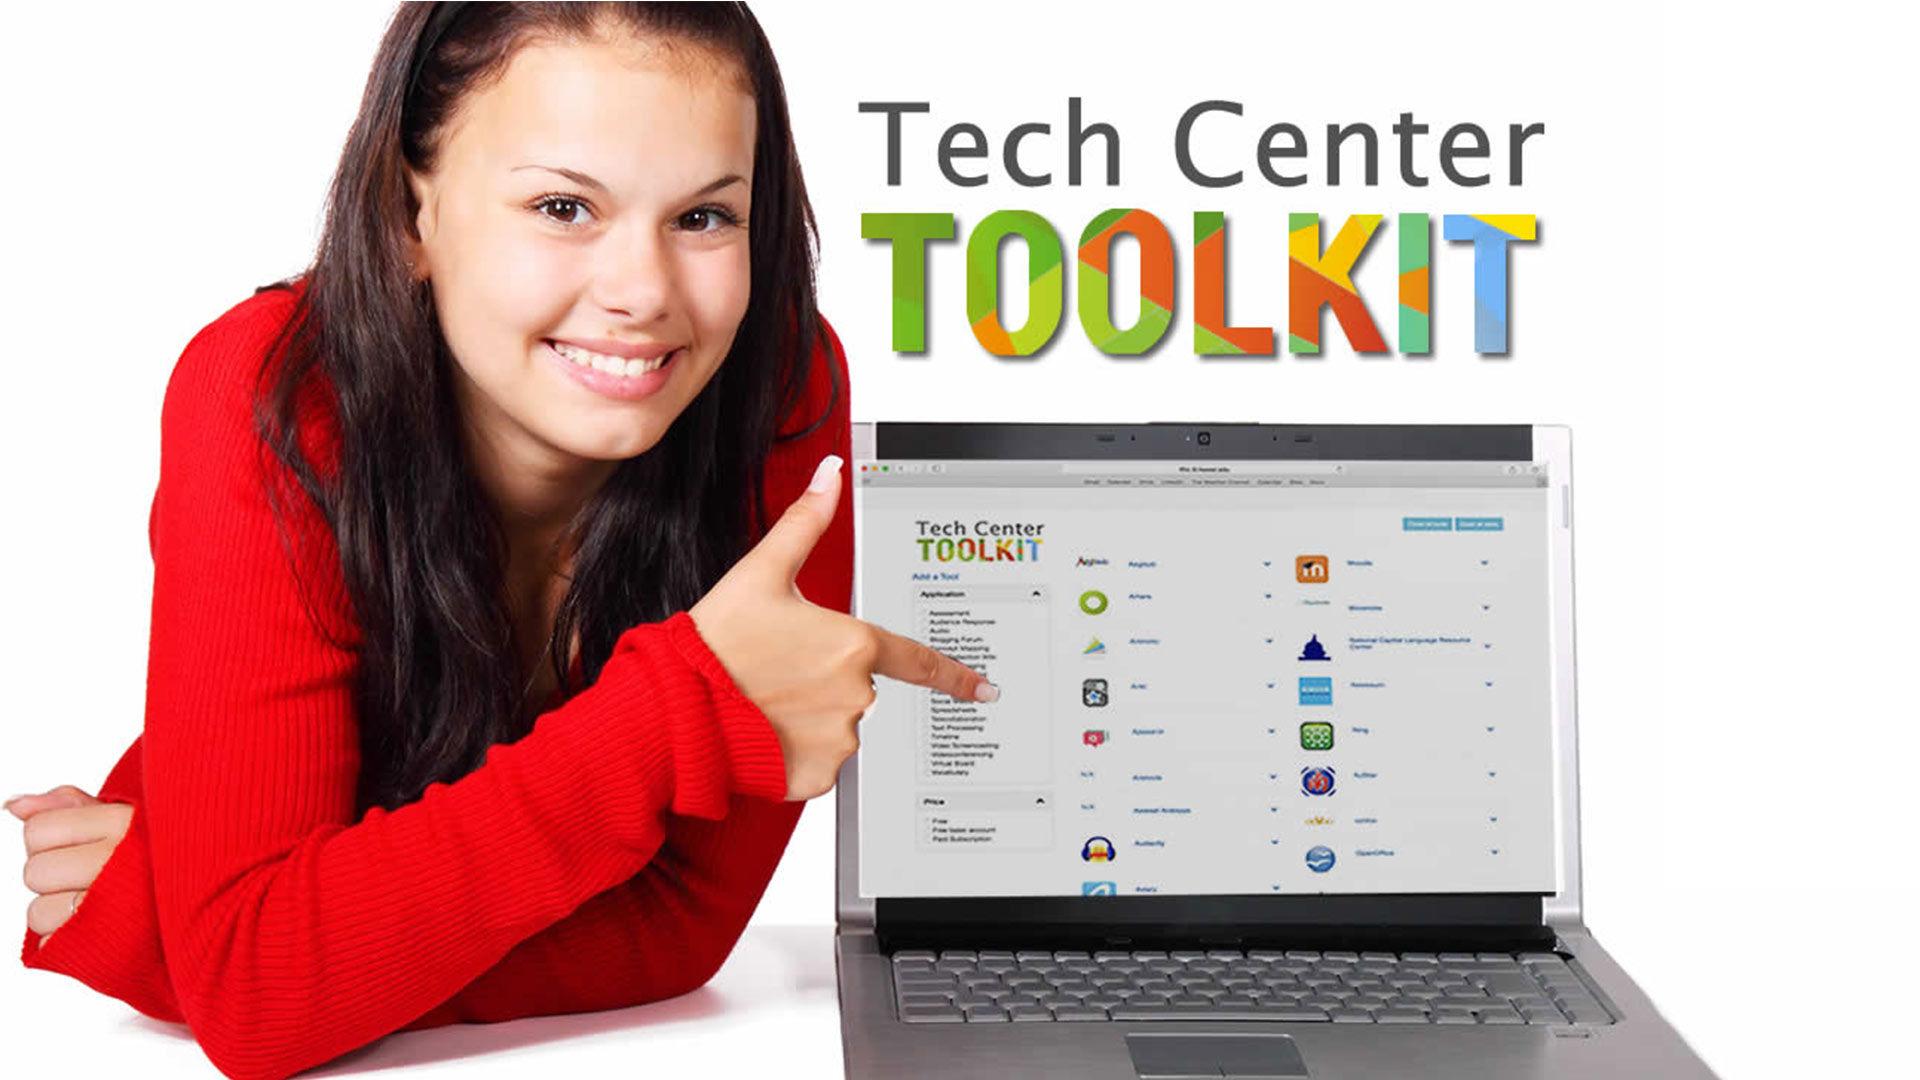 Tech Center Toolkit